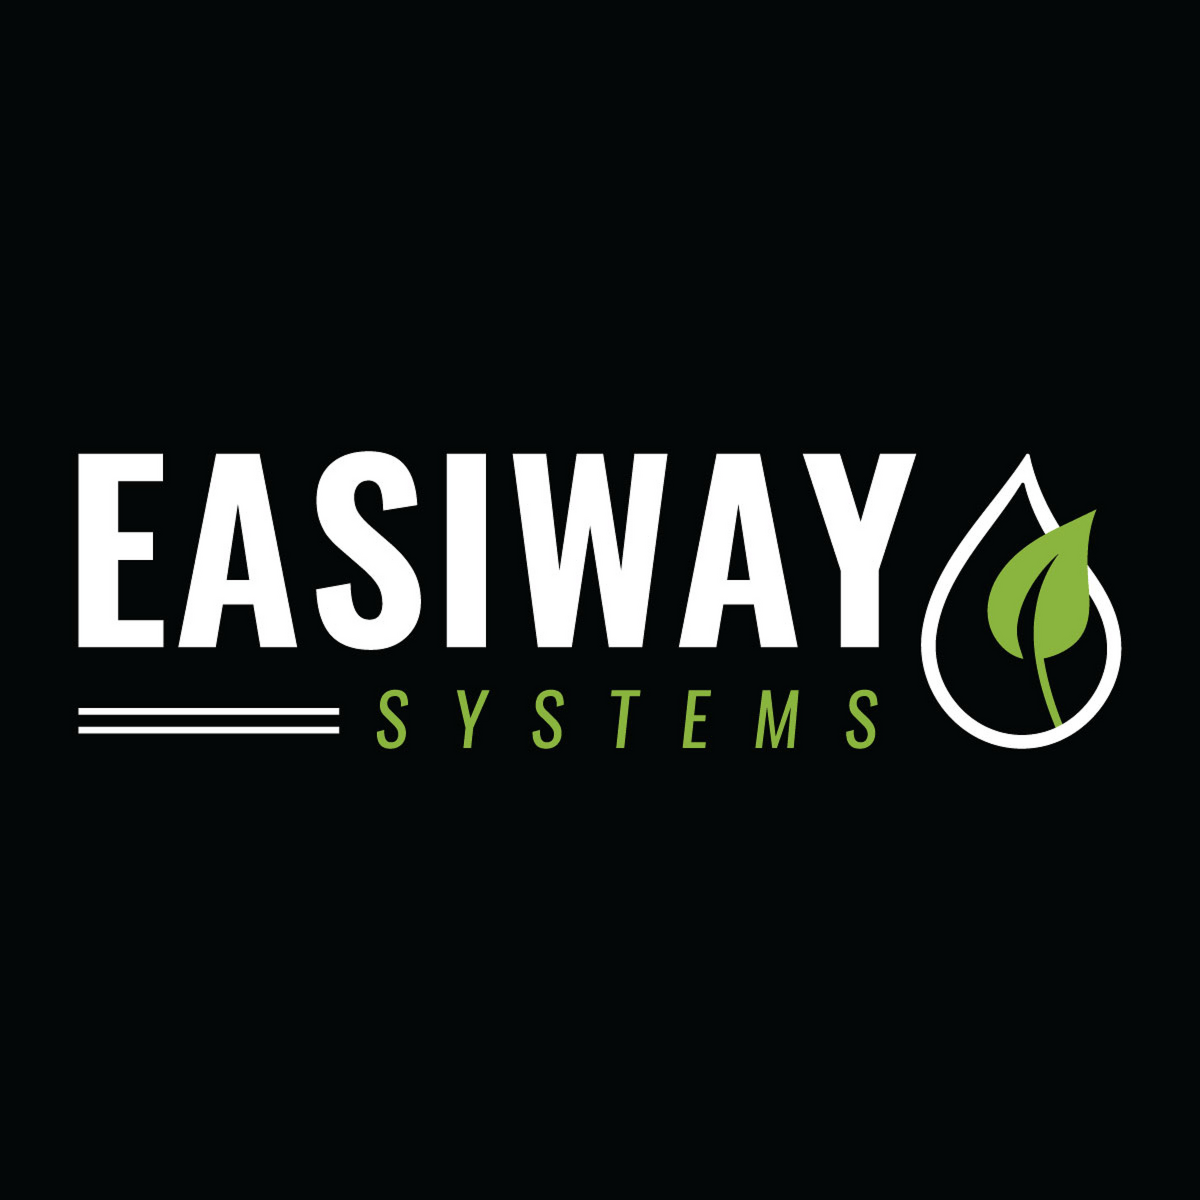 Easiway Systems Inc